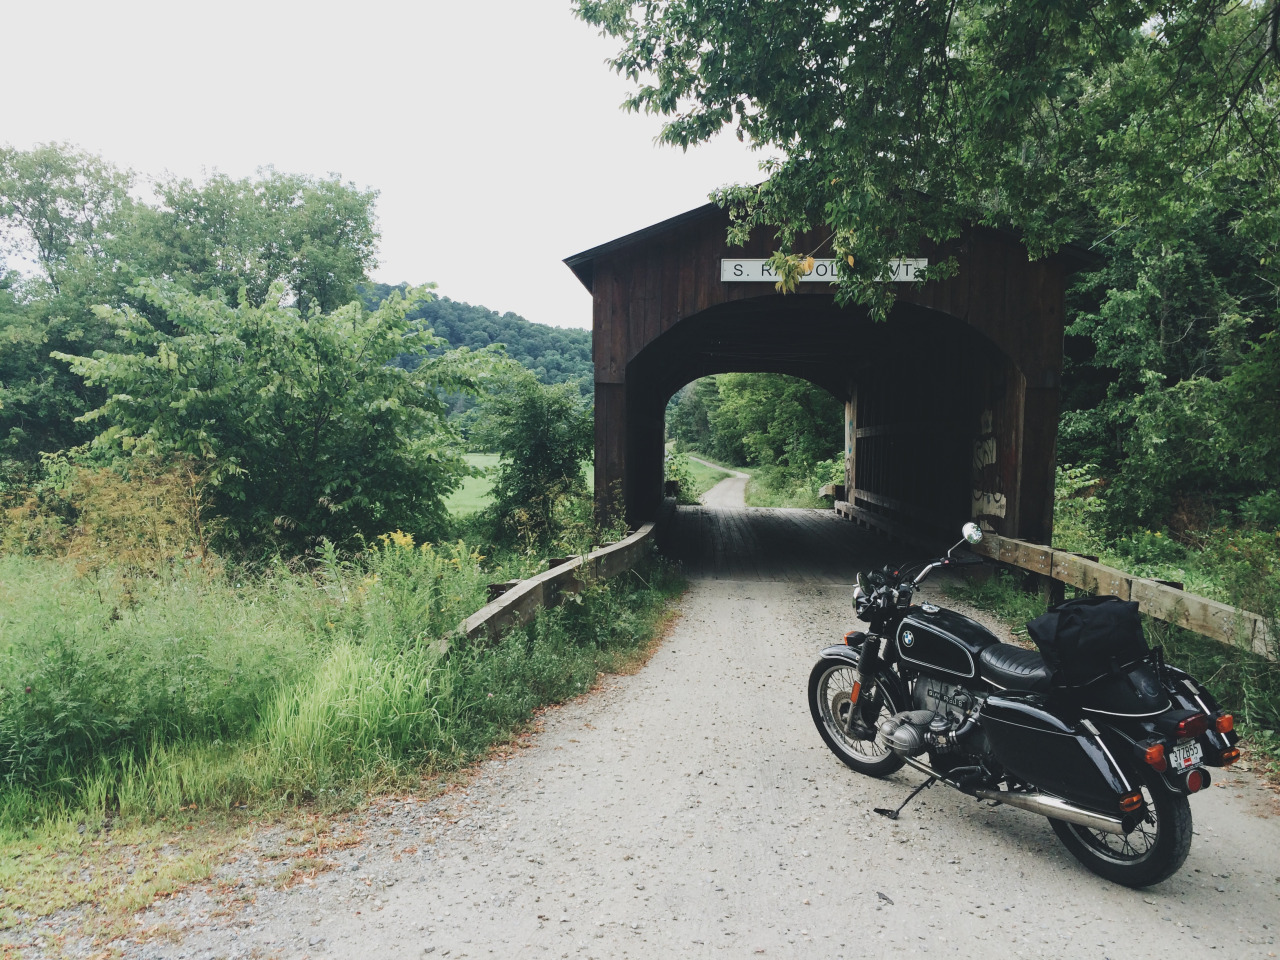 Taking a break under the covered bridges of Vermont.